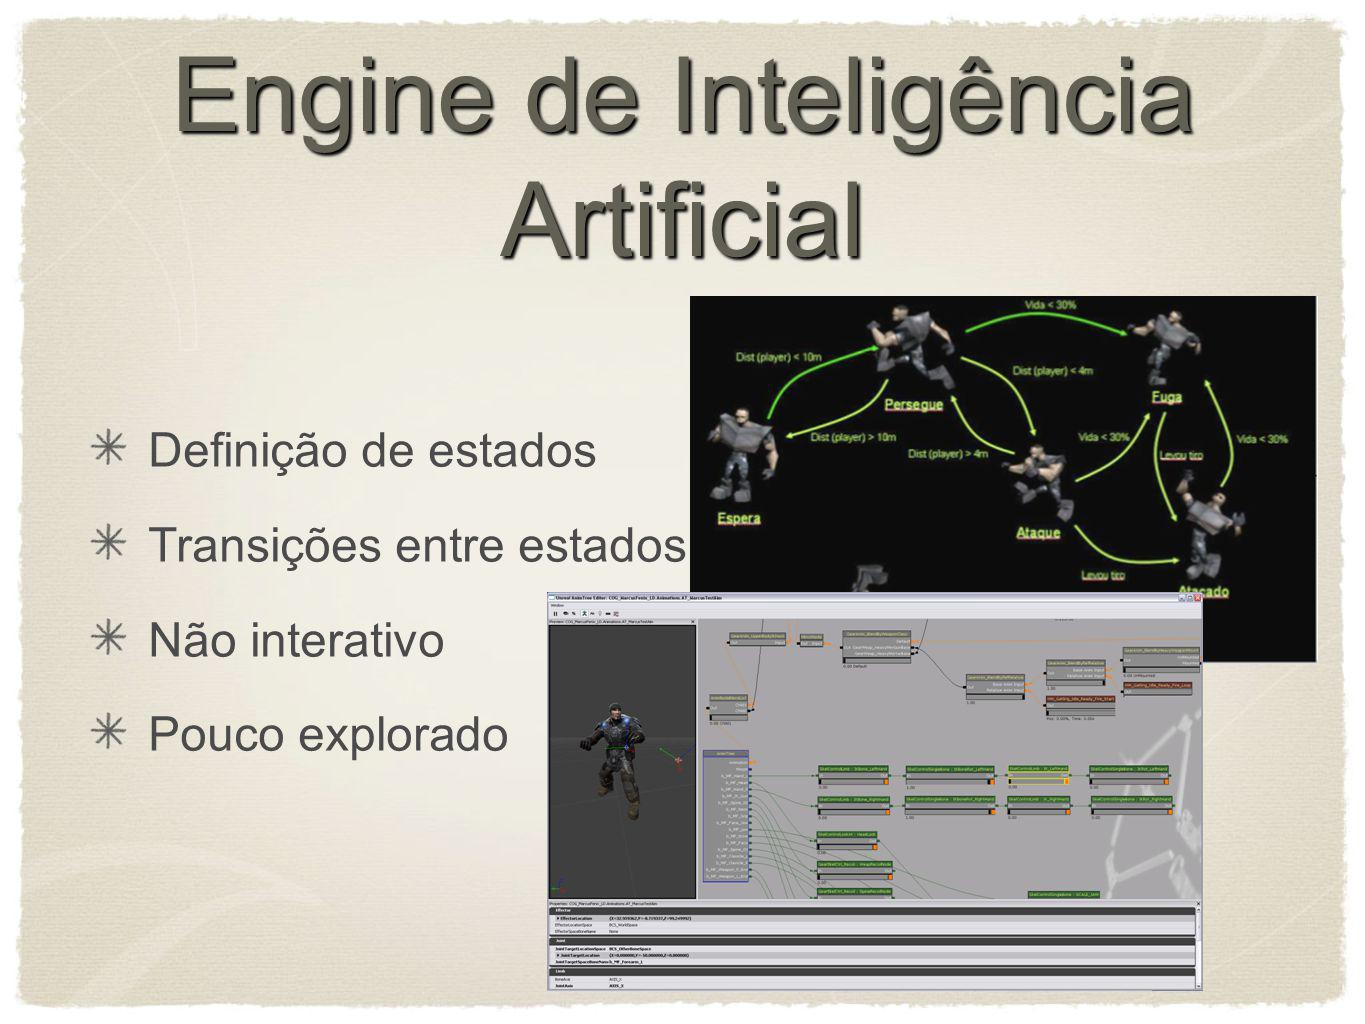 Engine de Inteligência Artificial